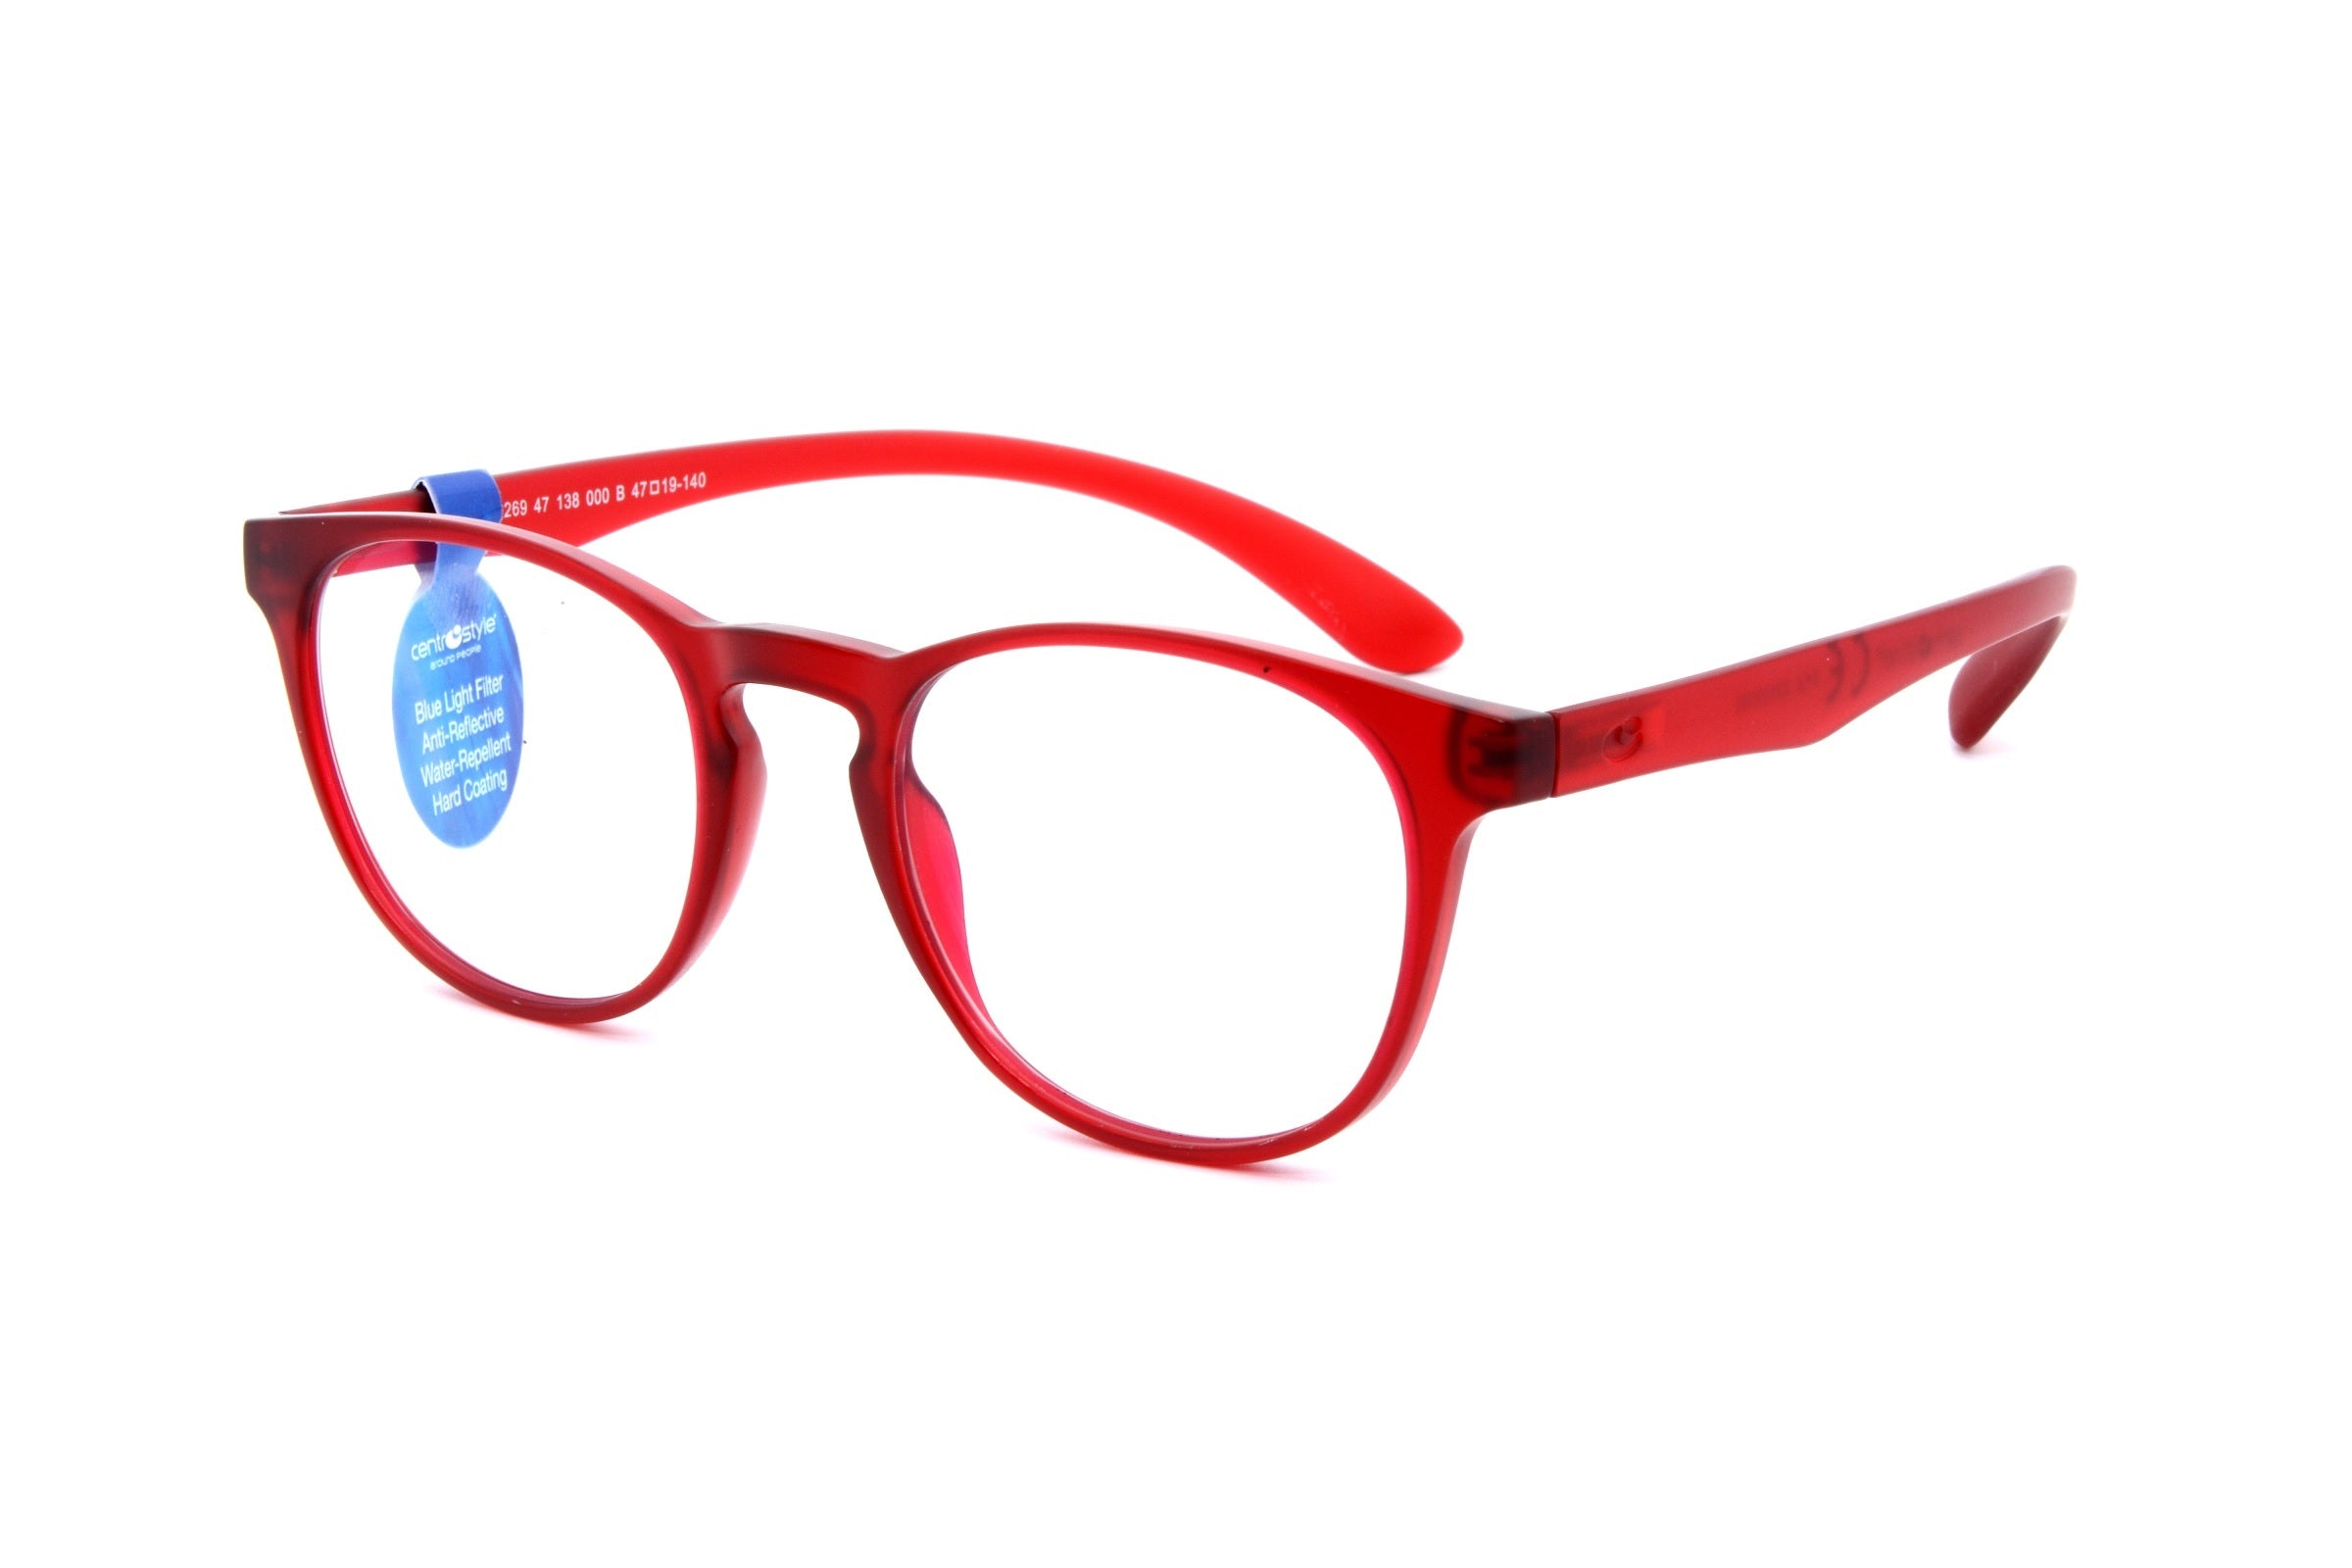 Centrostyle eyewear Blue Light F02694713800B - Optics Trading